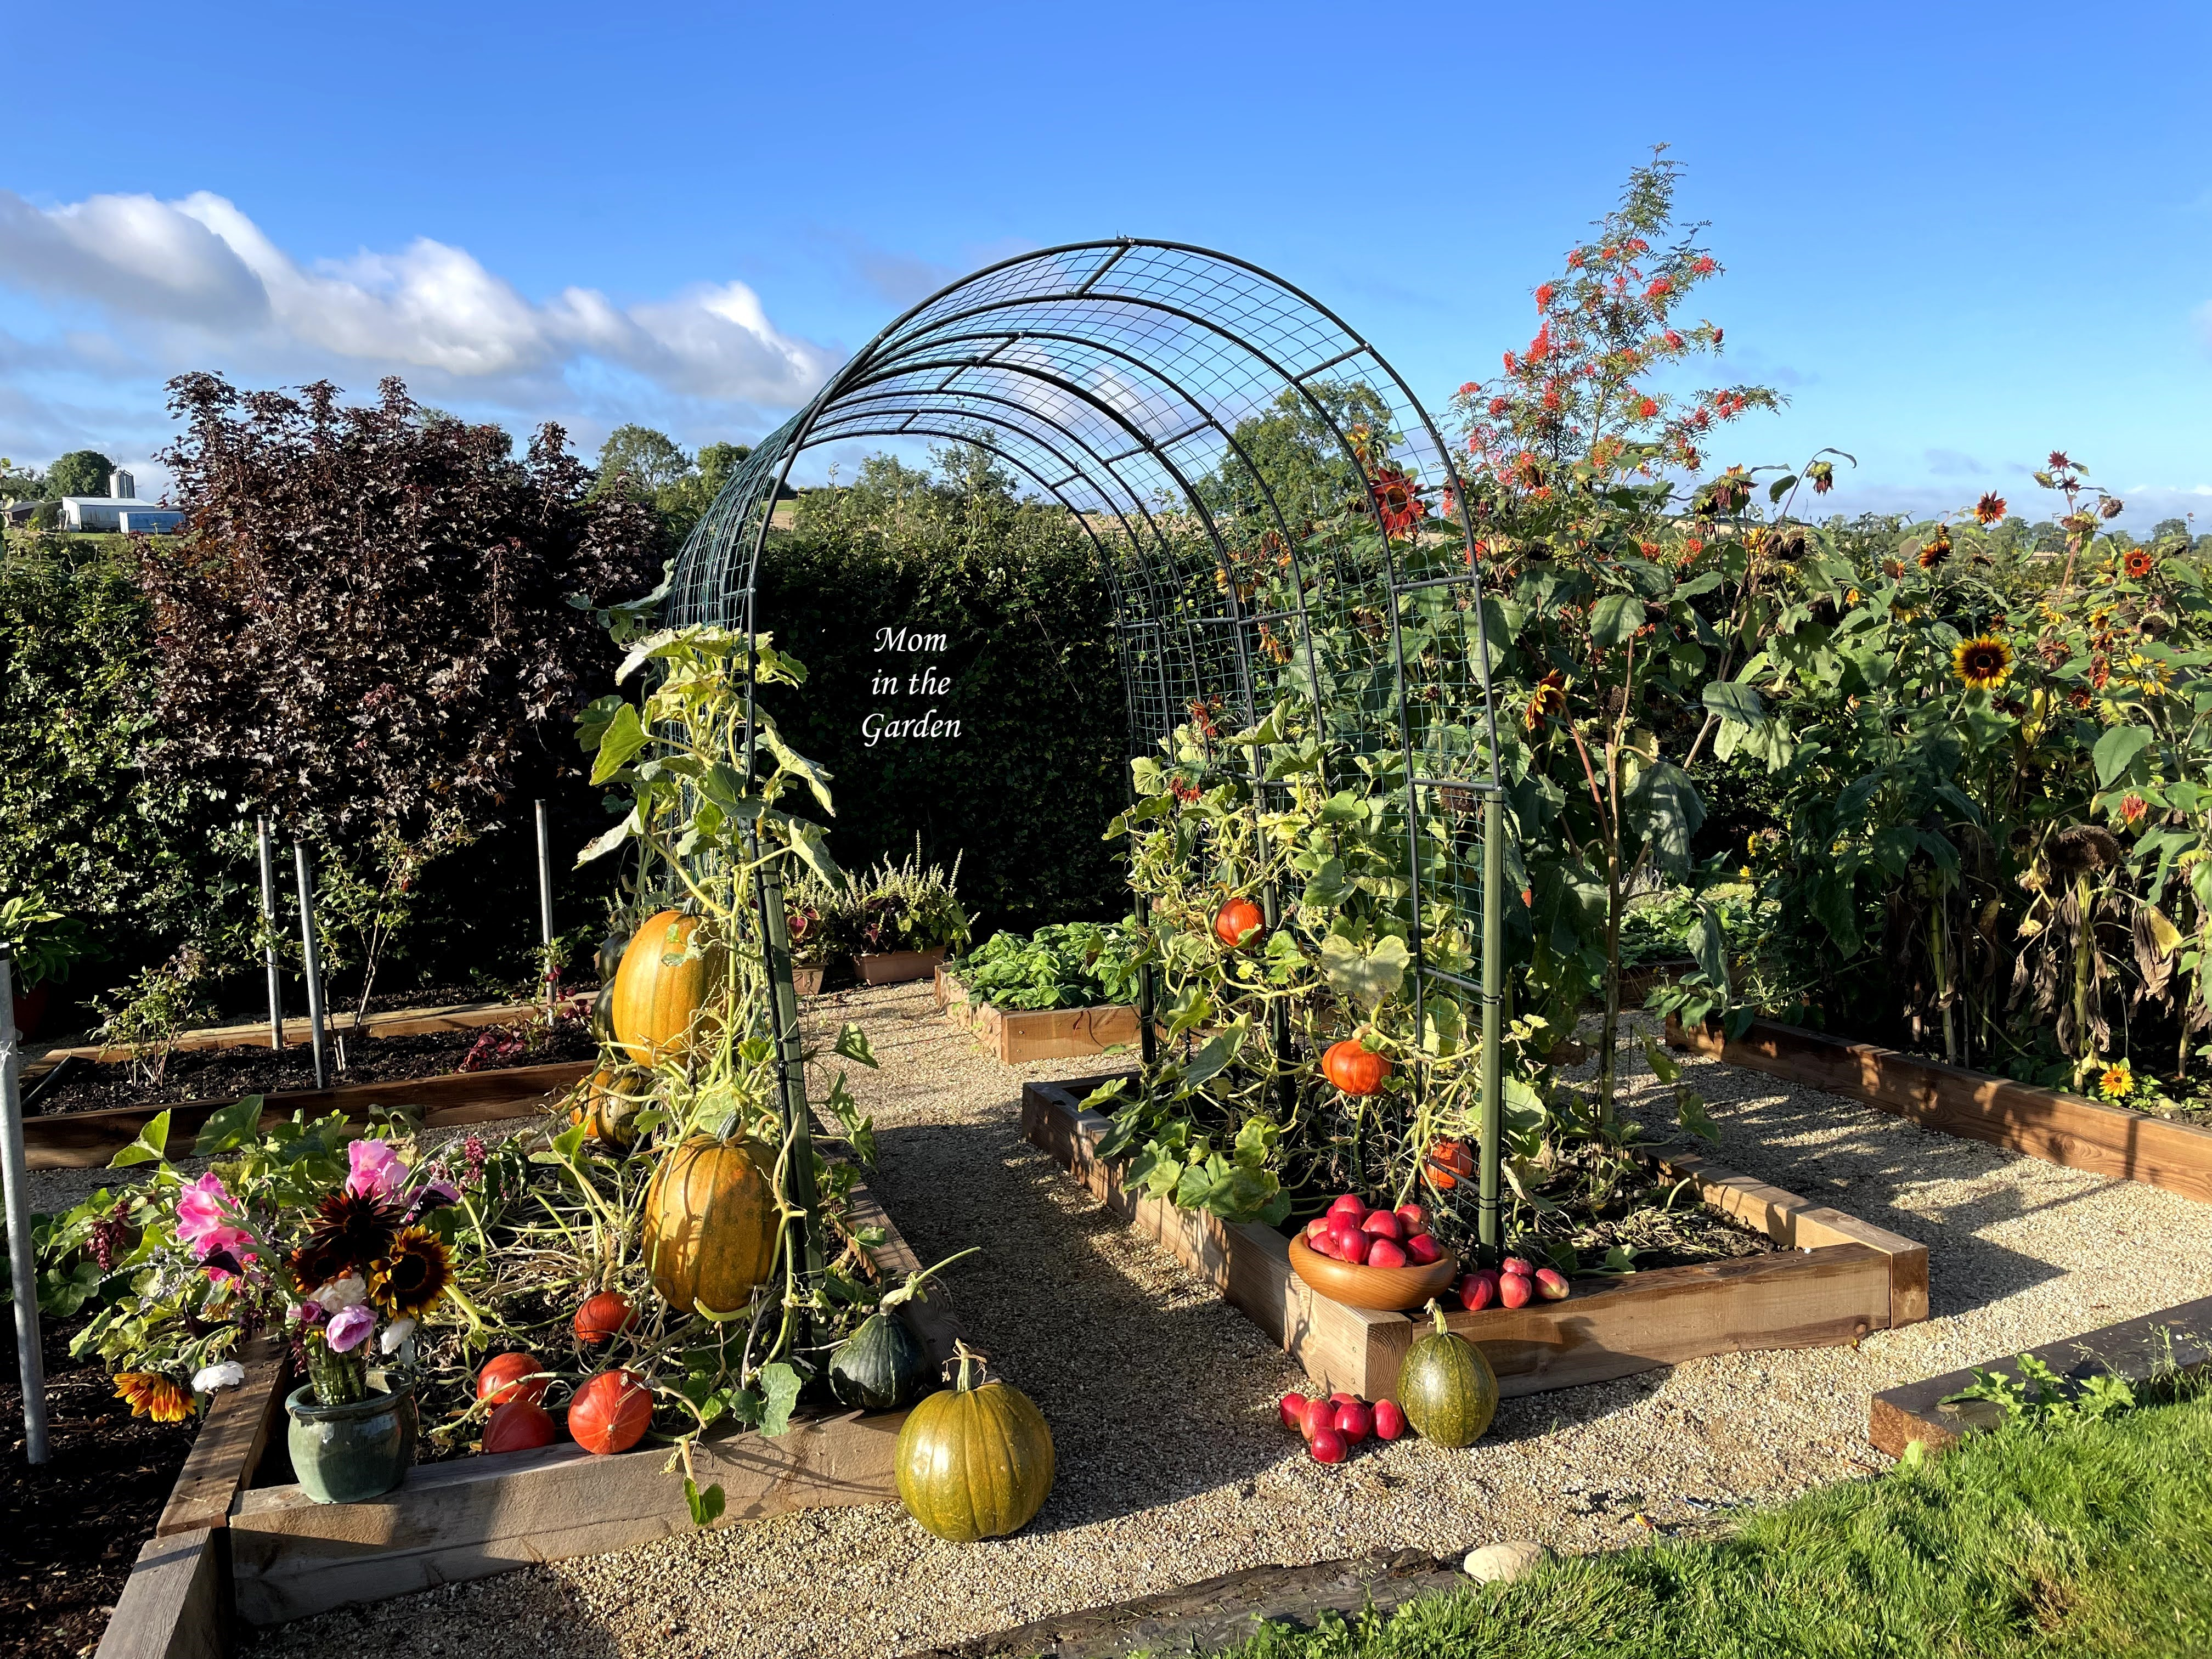 Pumpkin arch with apples and flowers